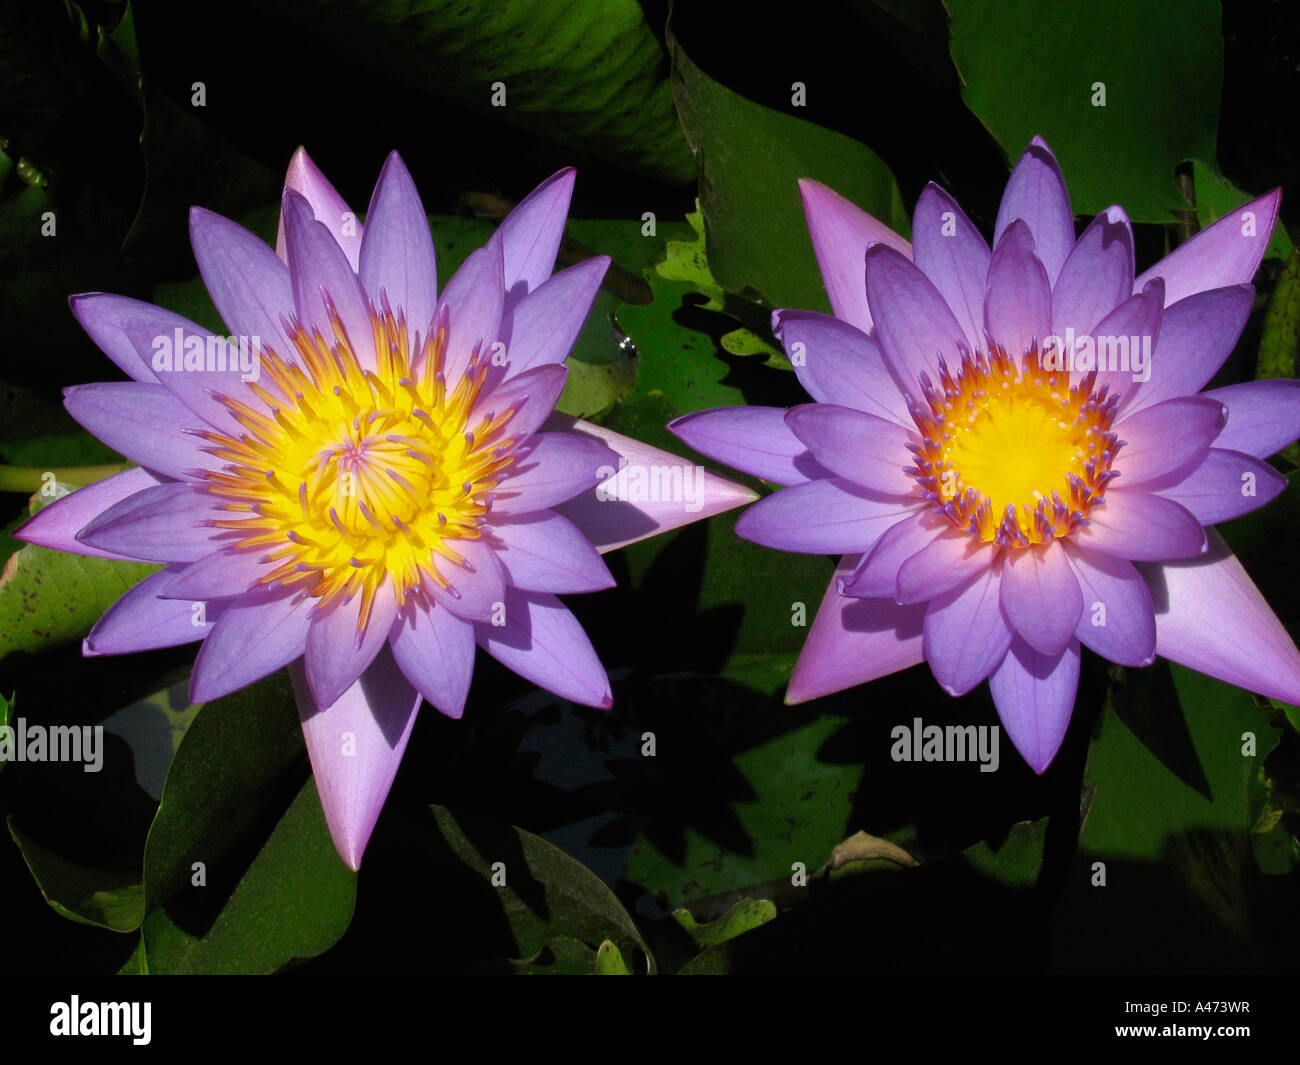 Close up of two purple lotuscred lotus nelumbo nucifera family close up of two purple lotuscred lotus nelumbo nucifera family nelumbonaceae lotus is the national flower of india izmirmasajfo